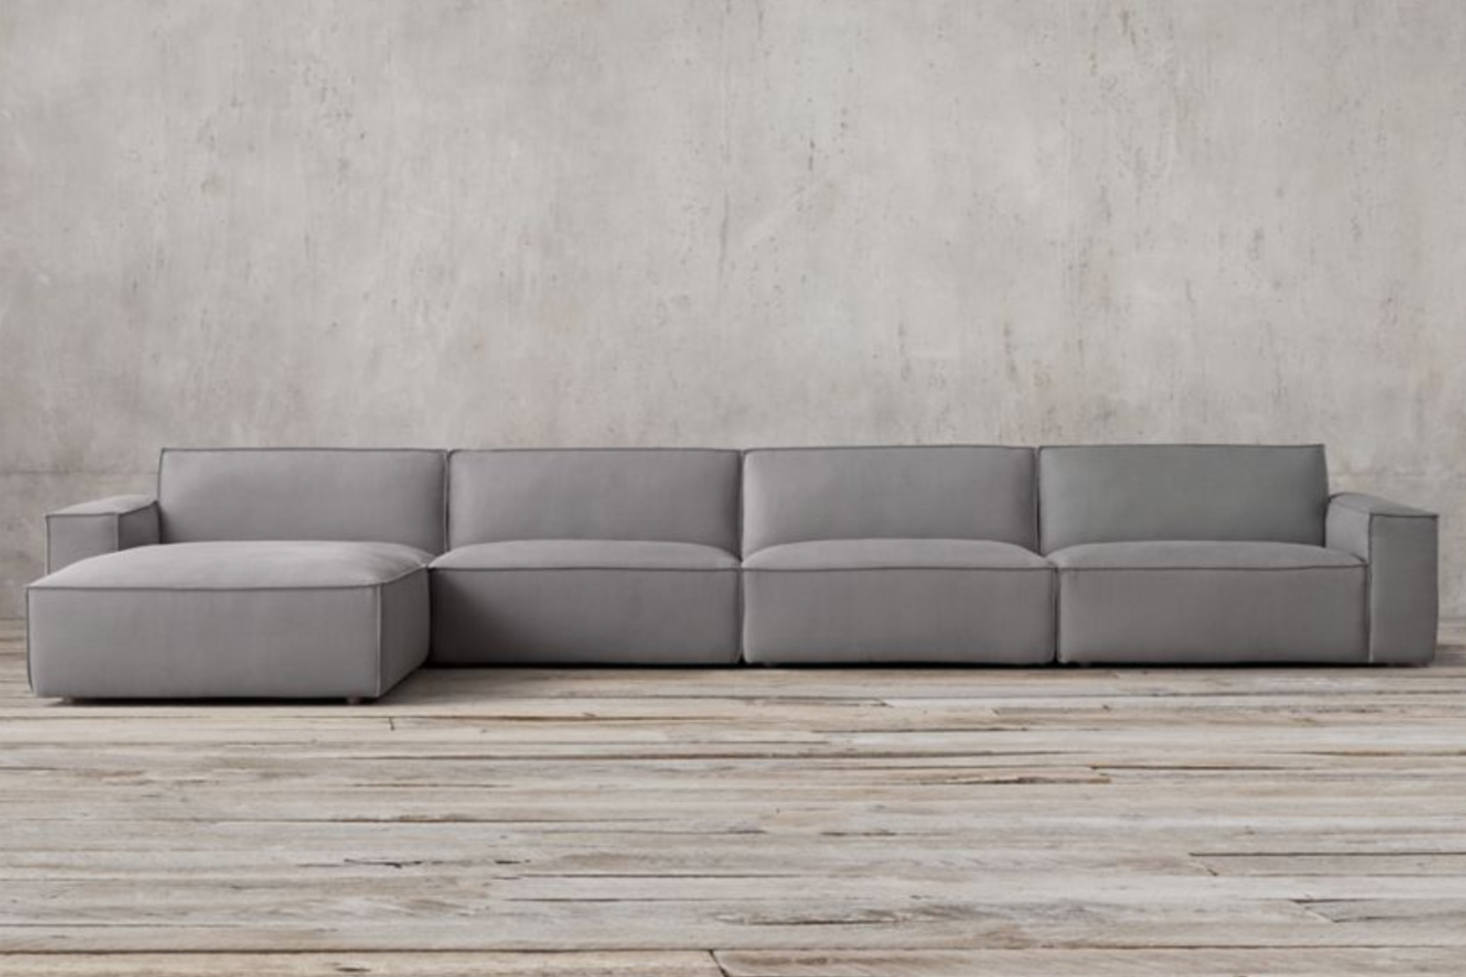 Even Restoration Hardware jumped on the clunky modular sofa bandwagon with  their Como Modular Sofa Sectional